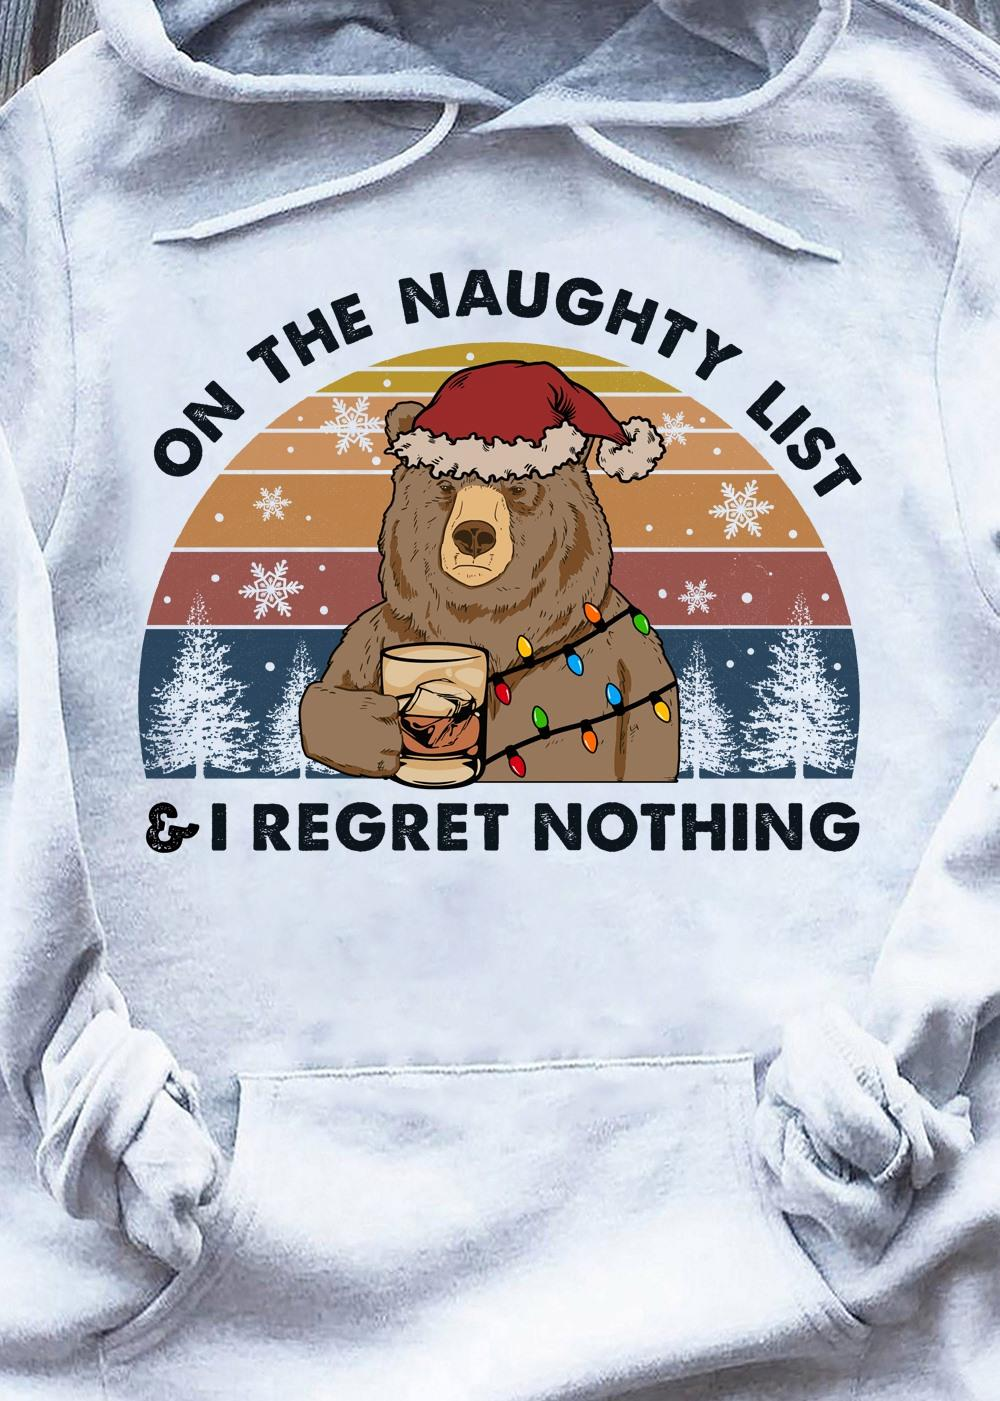 On The Naughty List & I Regret Nothing Shirt